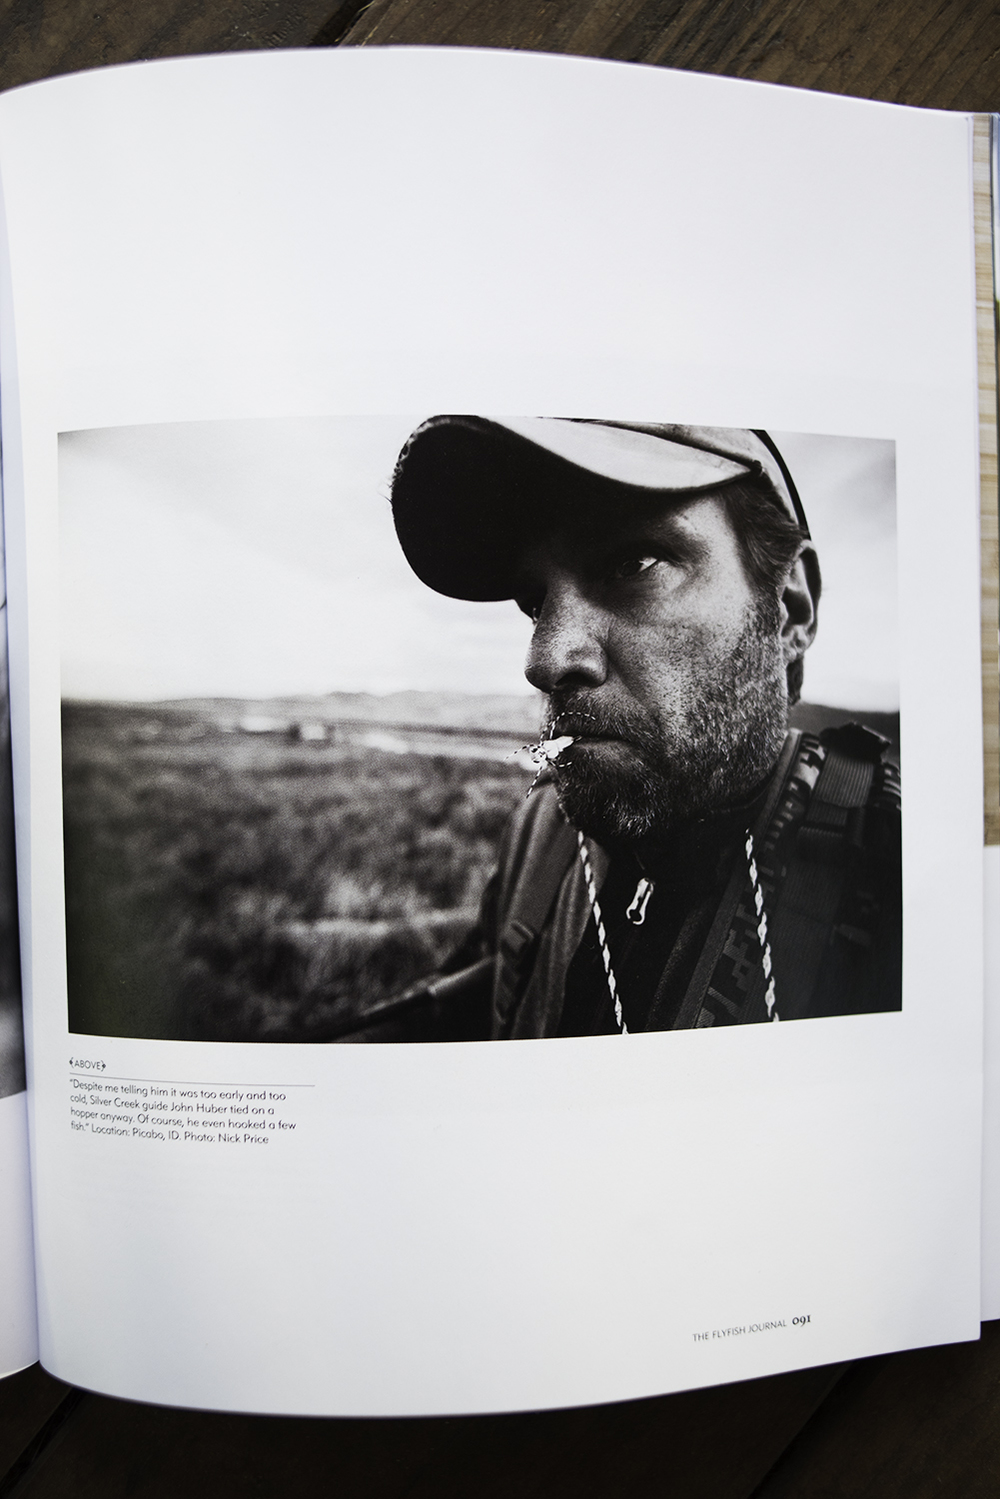 Image of Guide and Outfitter of Picabo, Idaho, John Huber, in issue 7.4 of The FlyFish Journal.